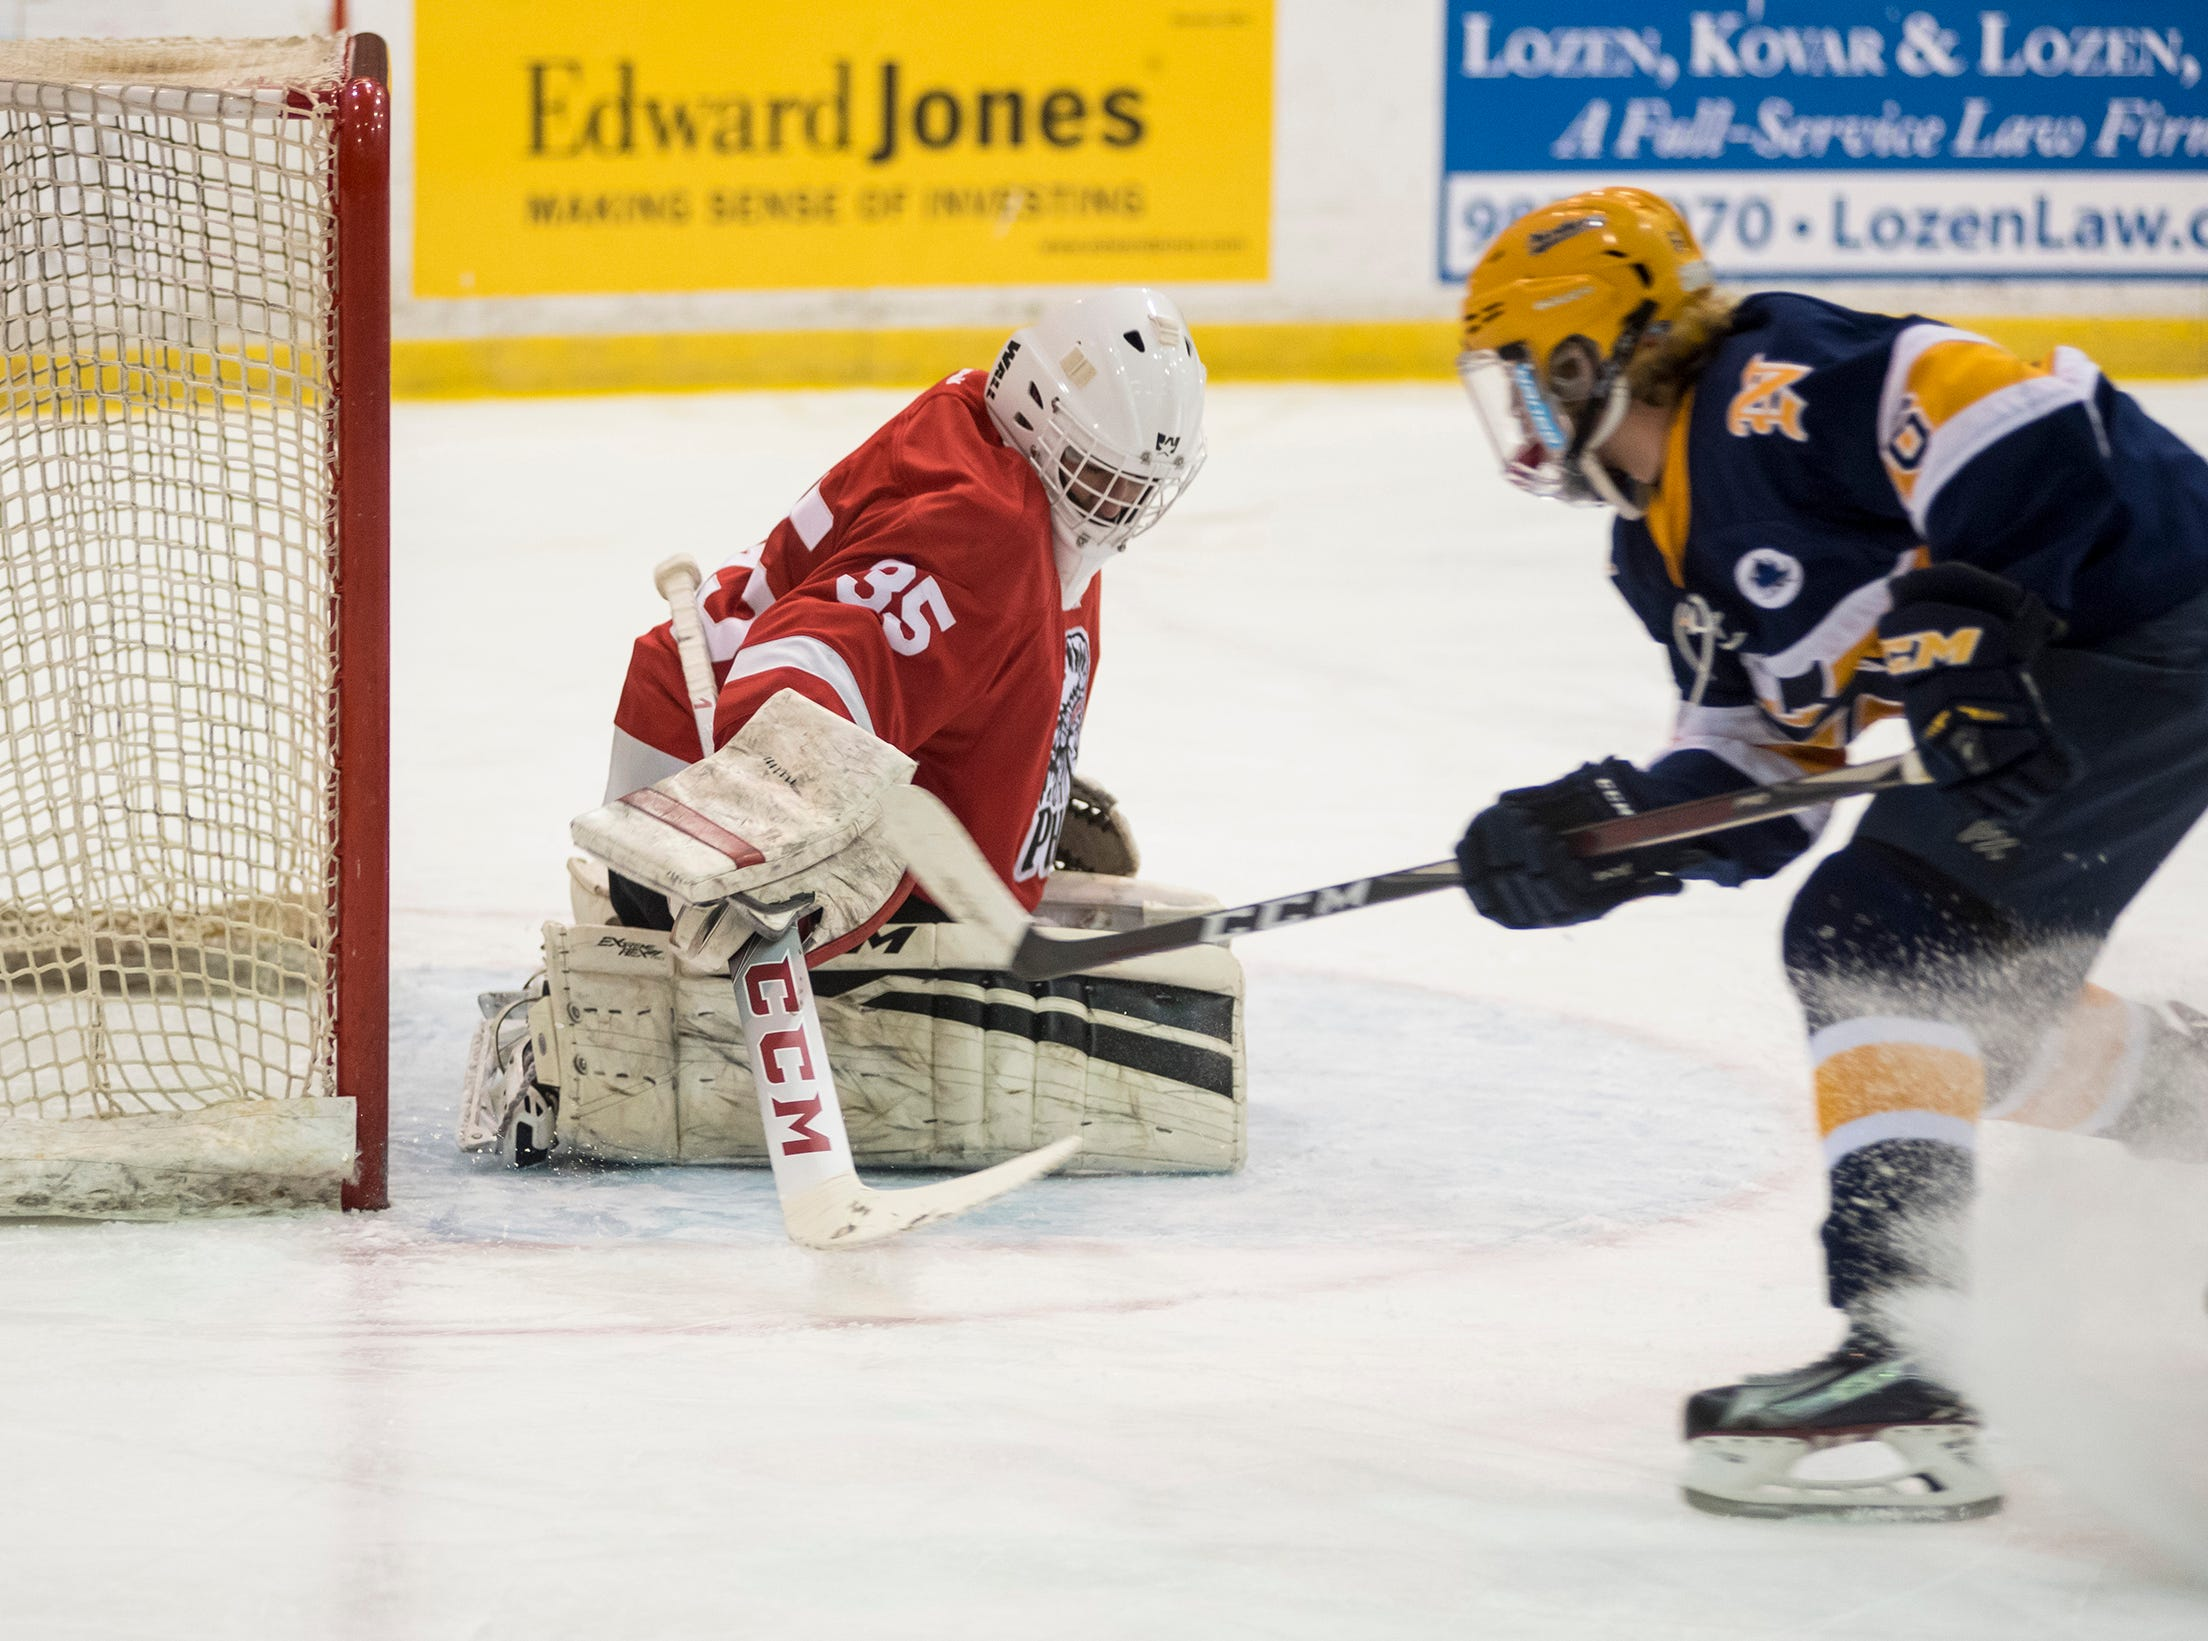 Port Huron High School goalie Josh Witer (35) tries to block a shot by Port Huron Northern High School forward Cole Peyerk during the Larry Manz Holiday Hockey Tournament Friday, Nov. 23, 2018 at McMorran Arena.